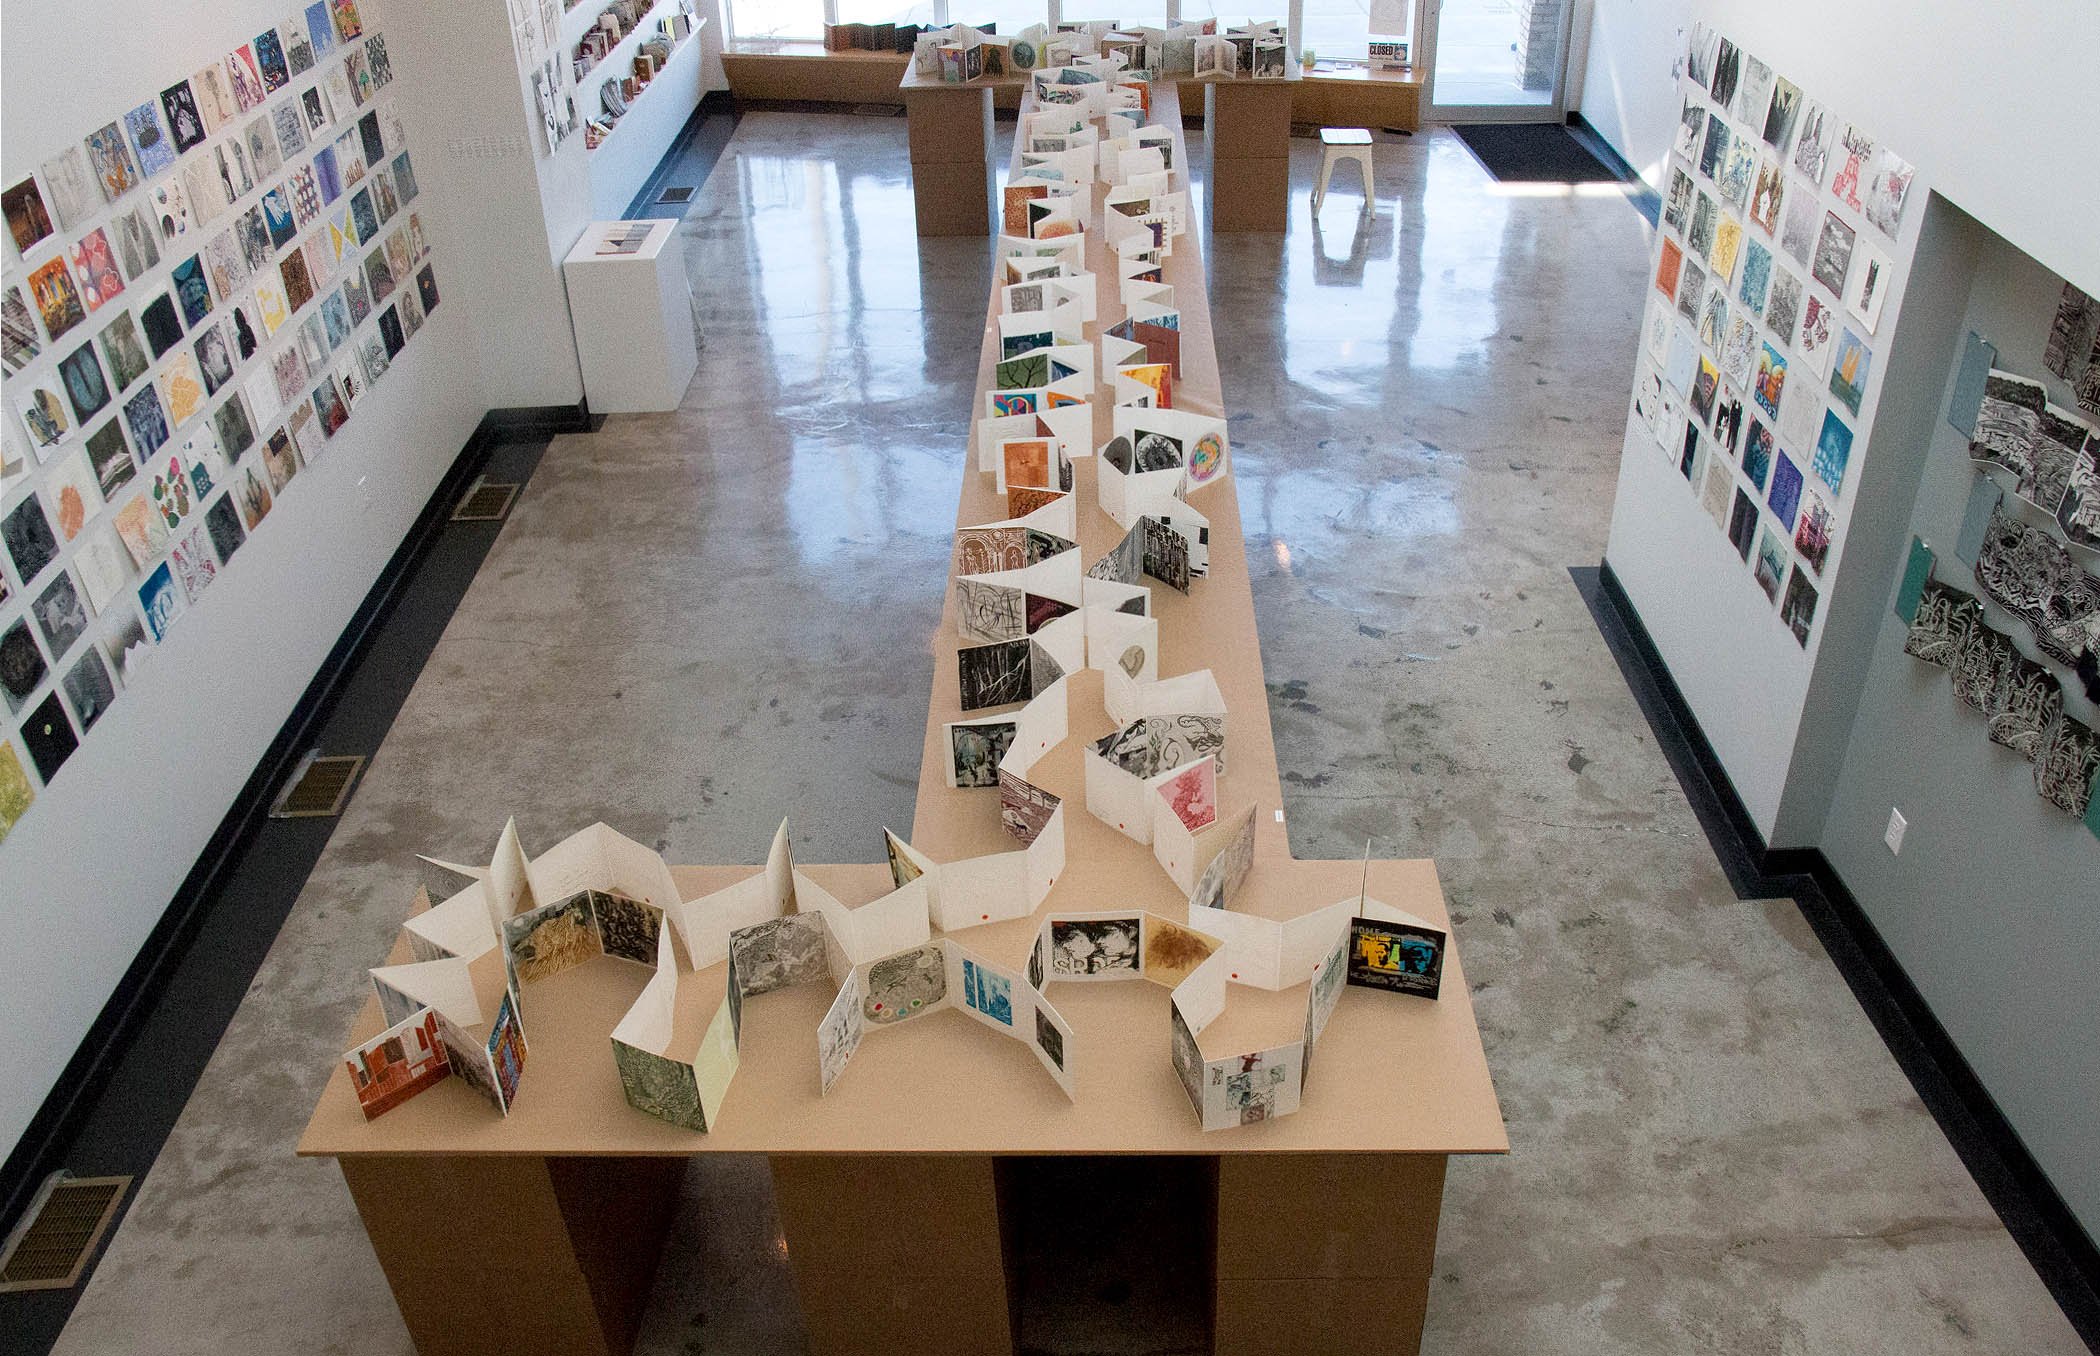 Art color rijeka - The Artists Book Are Made In Response To The Evocative Theme Of Invisible Cities And Join To Enrich The Installation